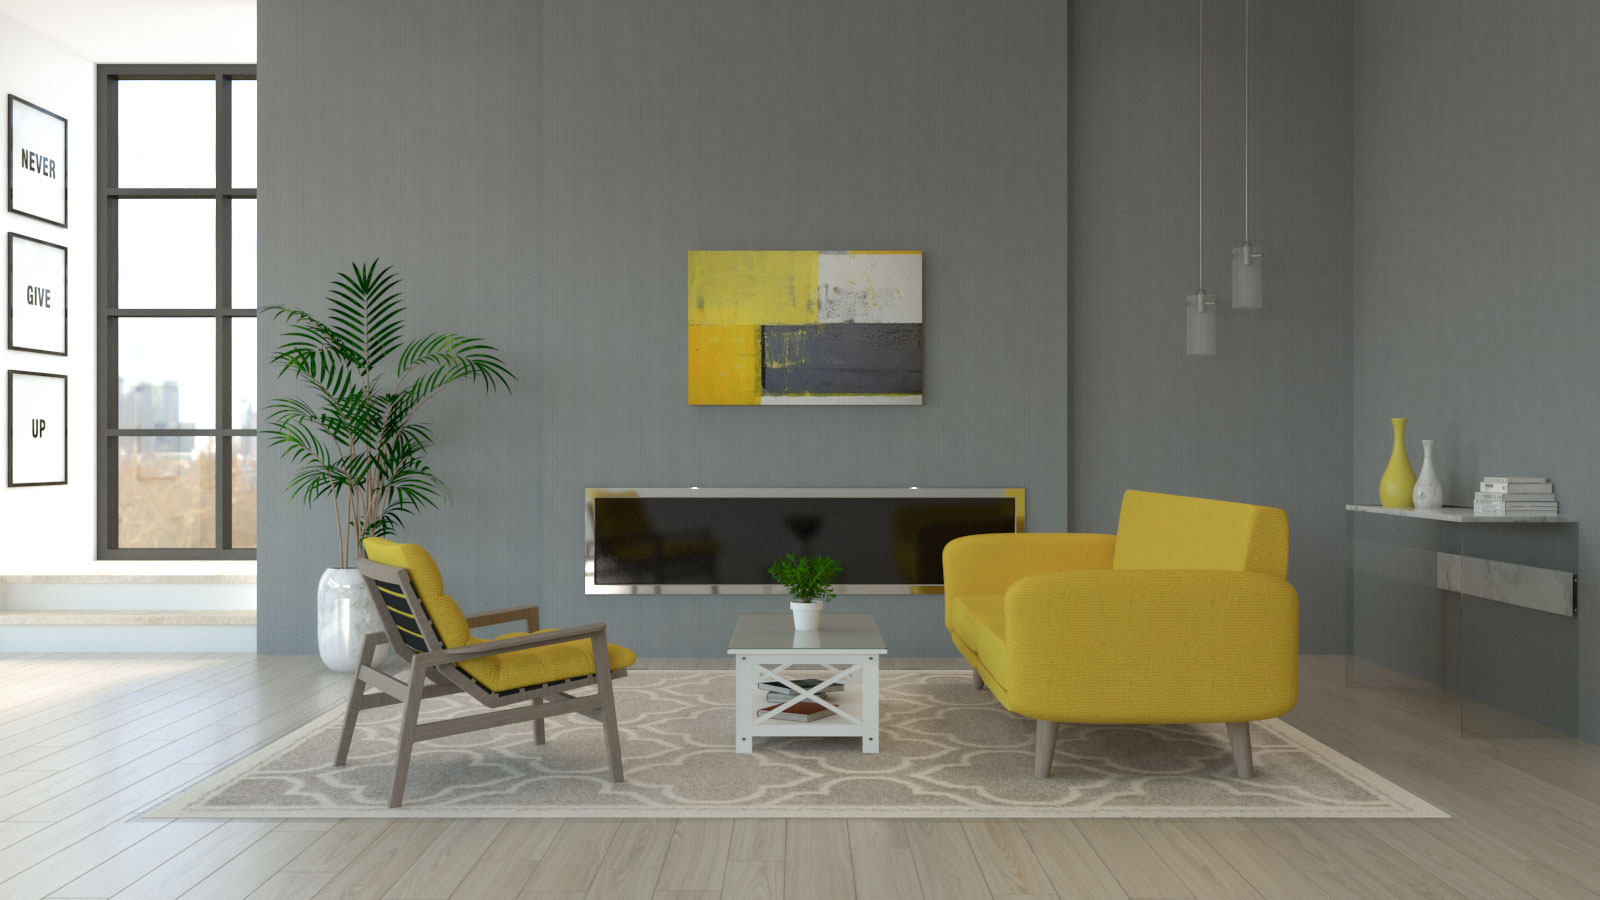 Living room with yellow furniture and gray walls